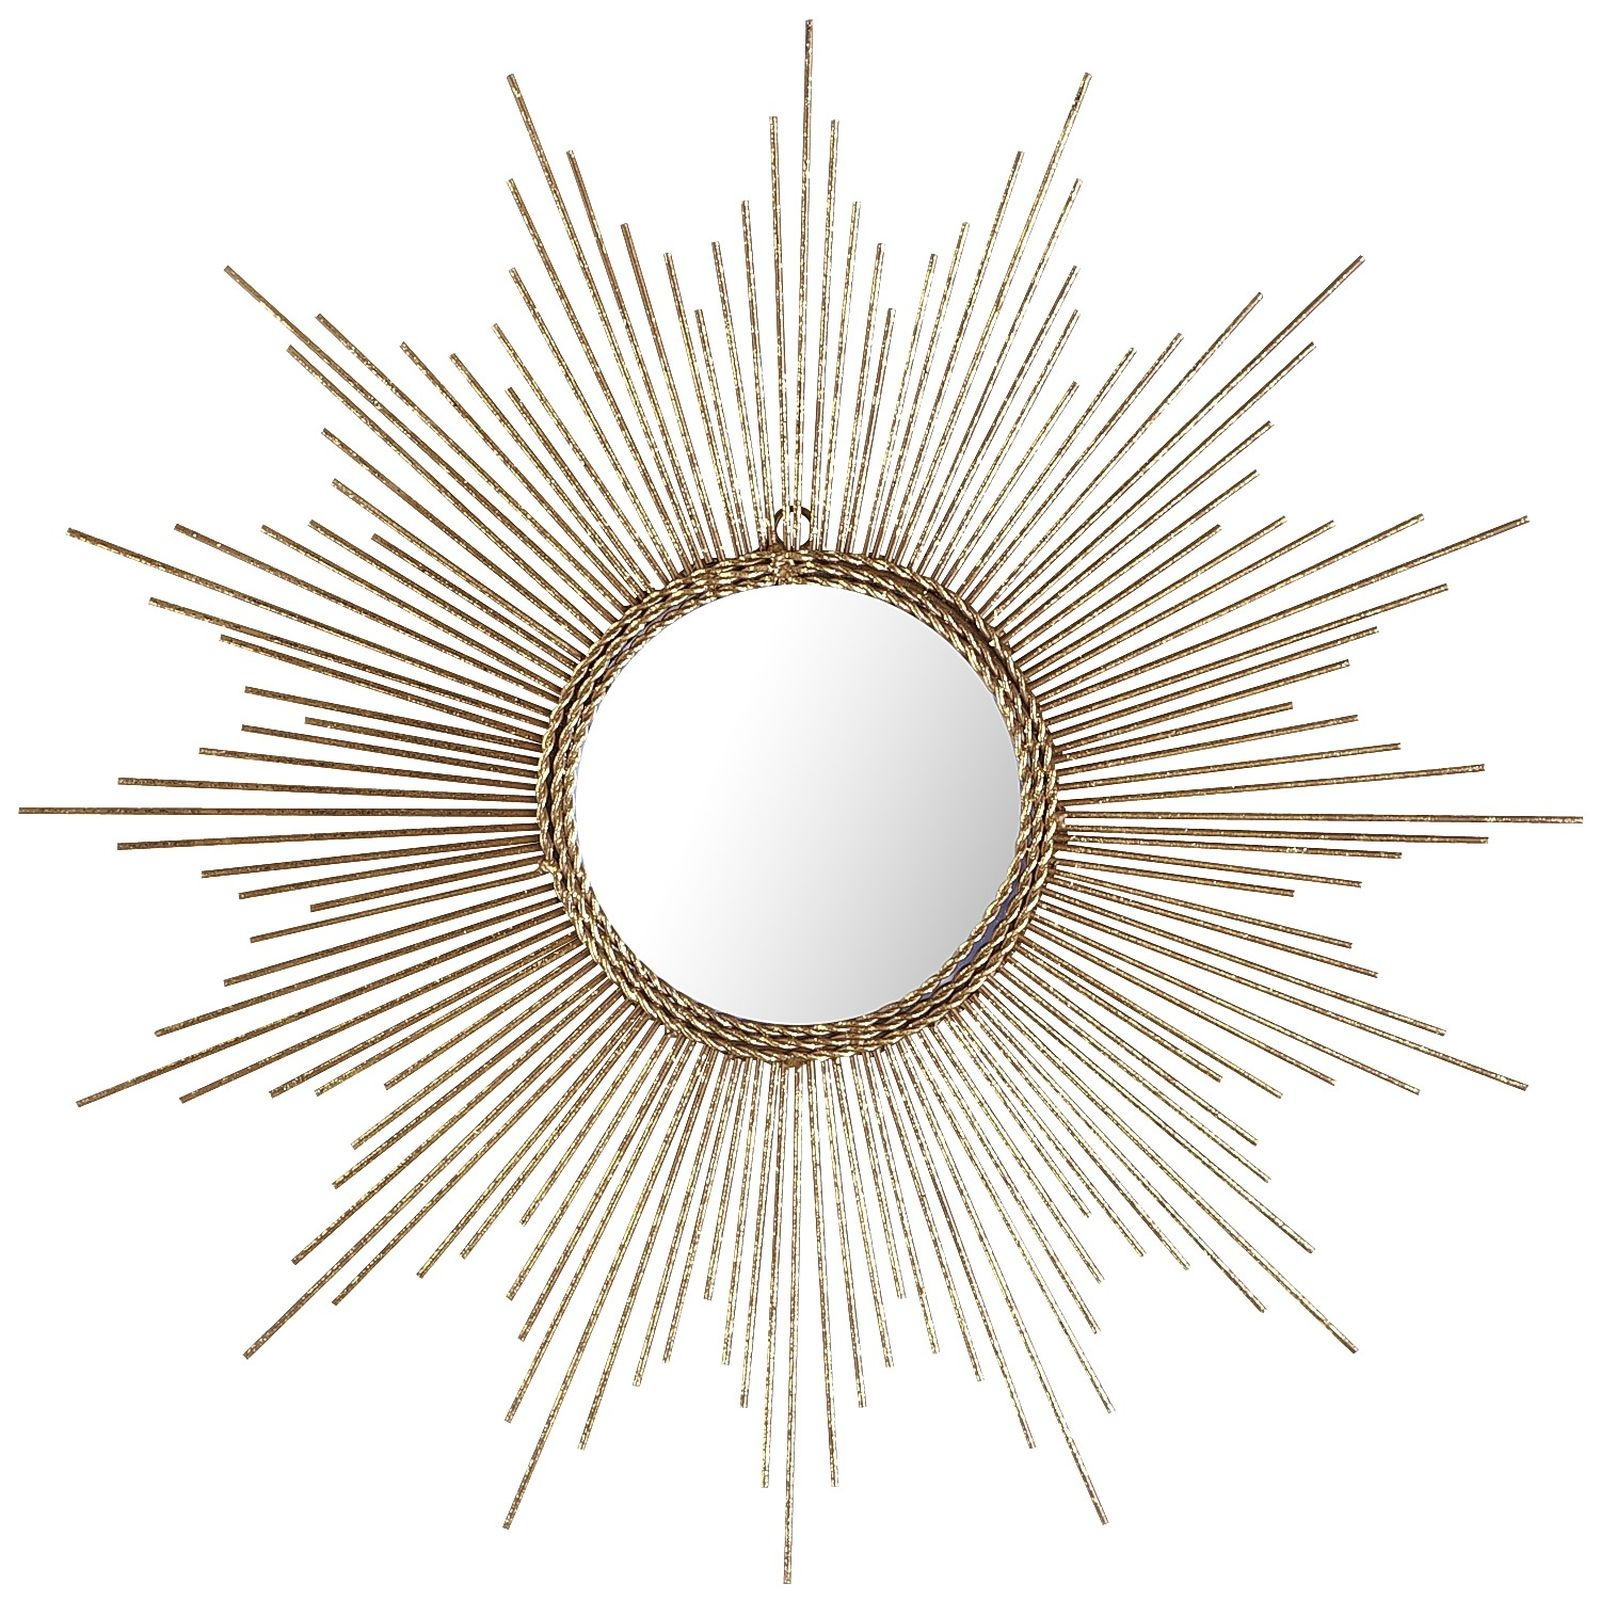 Fresh Ideas Sun Mirror Wall Decor Capricious Sun Face Extra Large Inside Extra Large Sunburst Mirror (View 11 of 15)